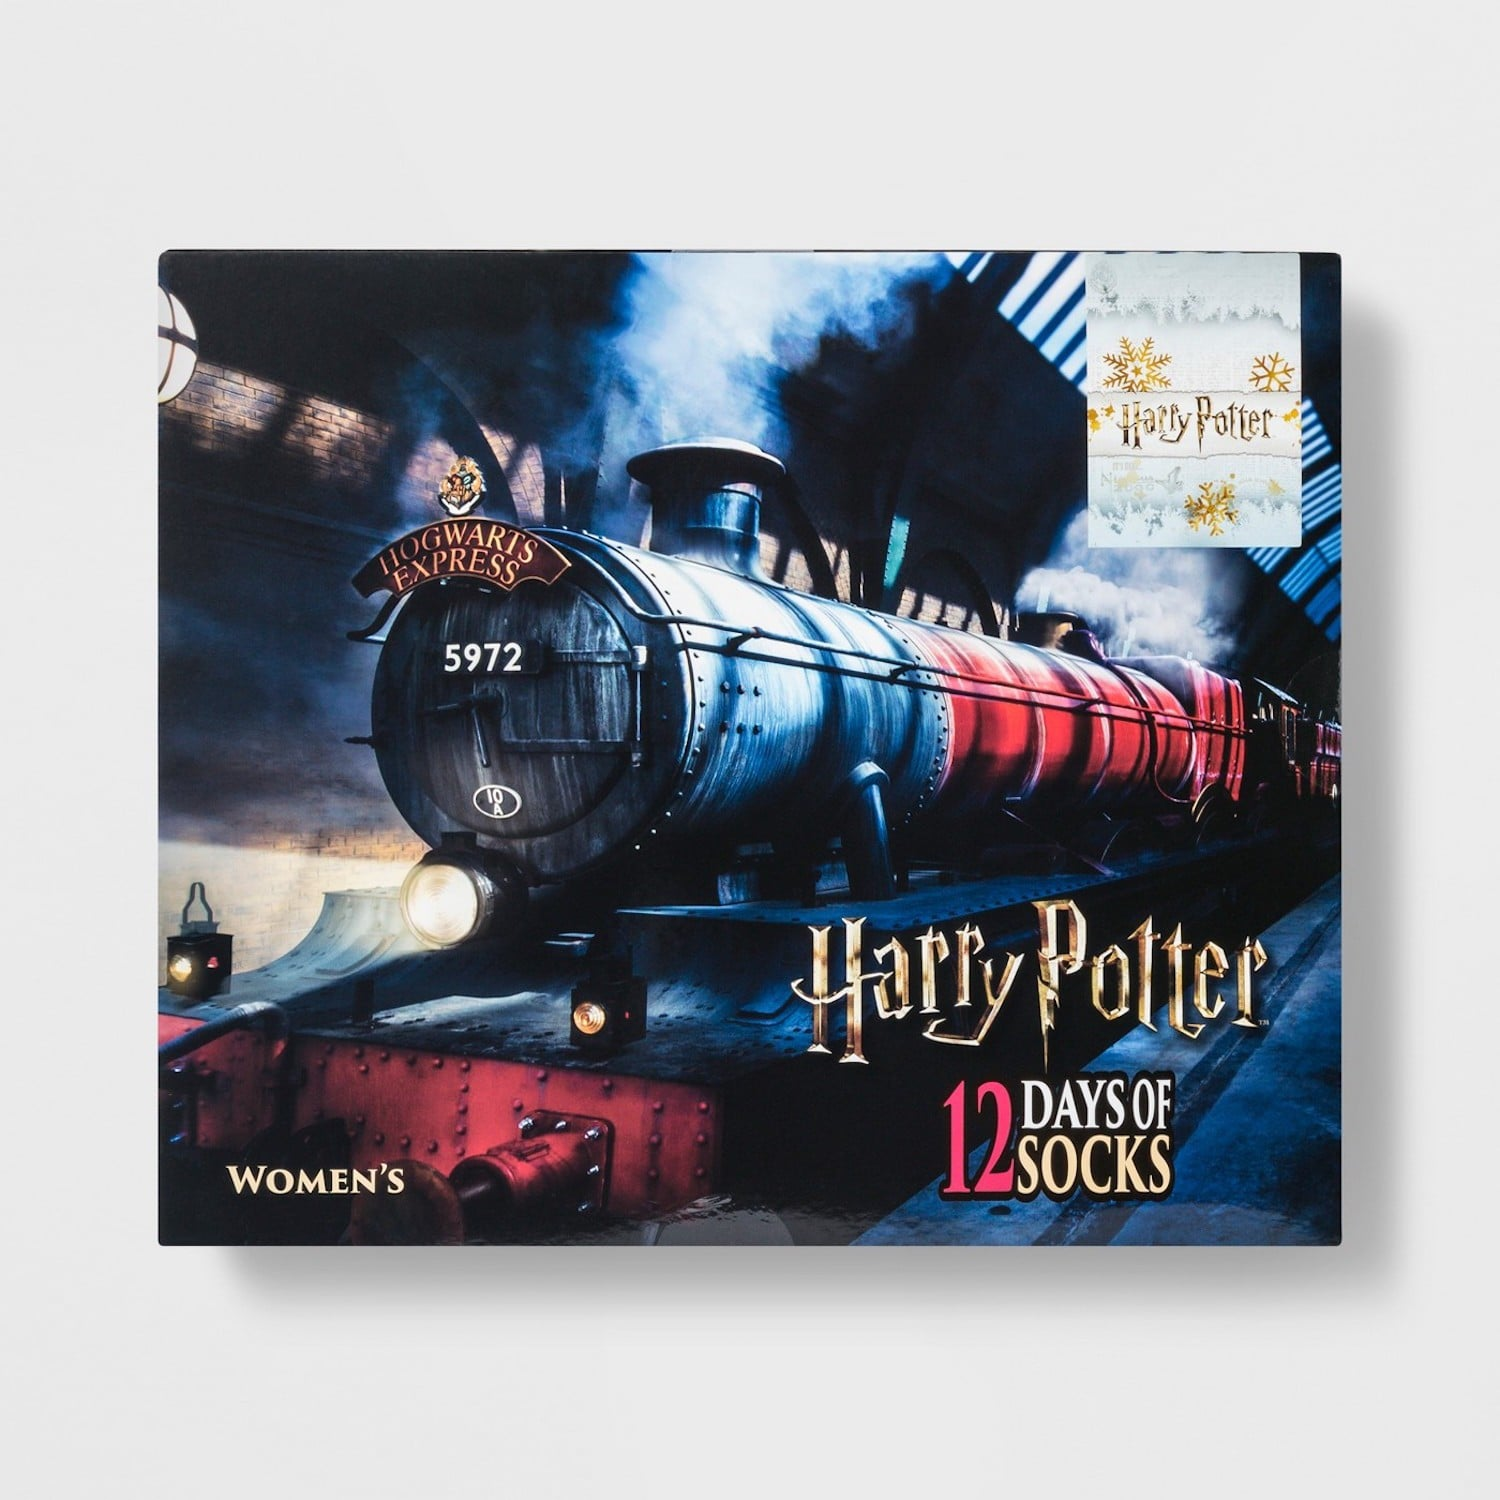 LOT of 3 HARRY POTTER 12 DAYS OF SOCKS ADVENT BOX GIFT SETS NEW SEALED Target